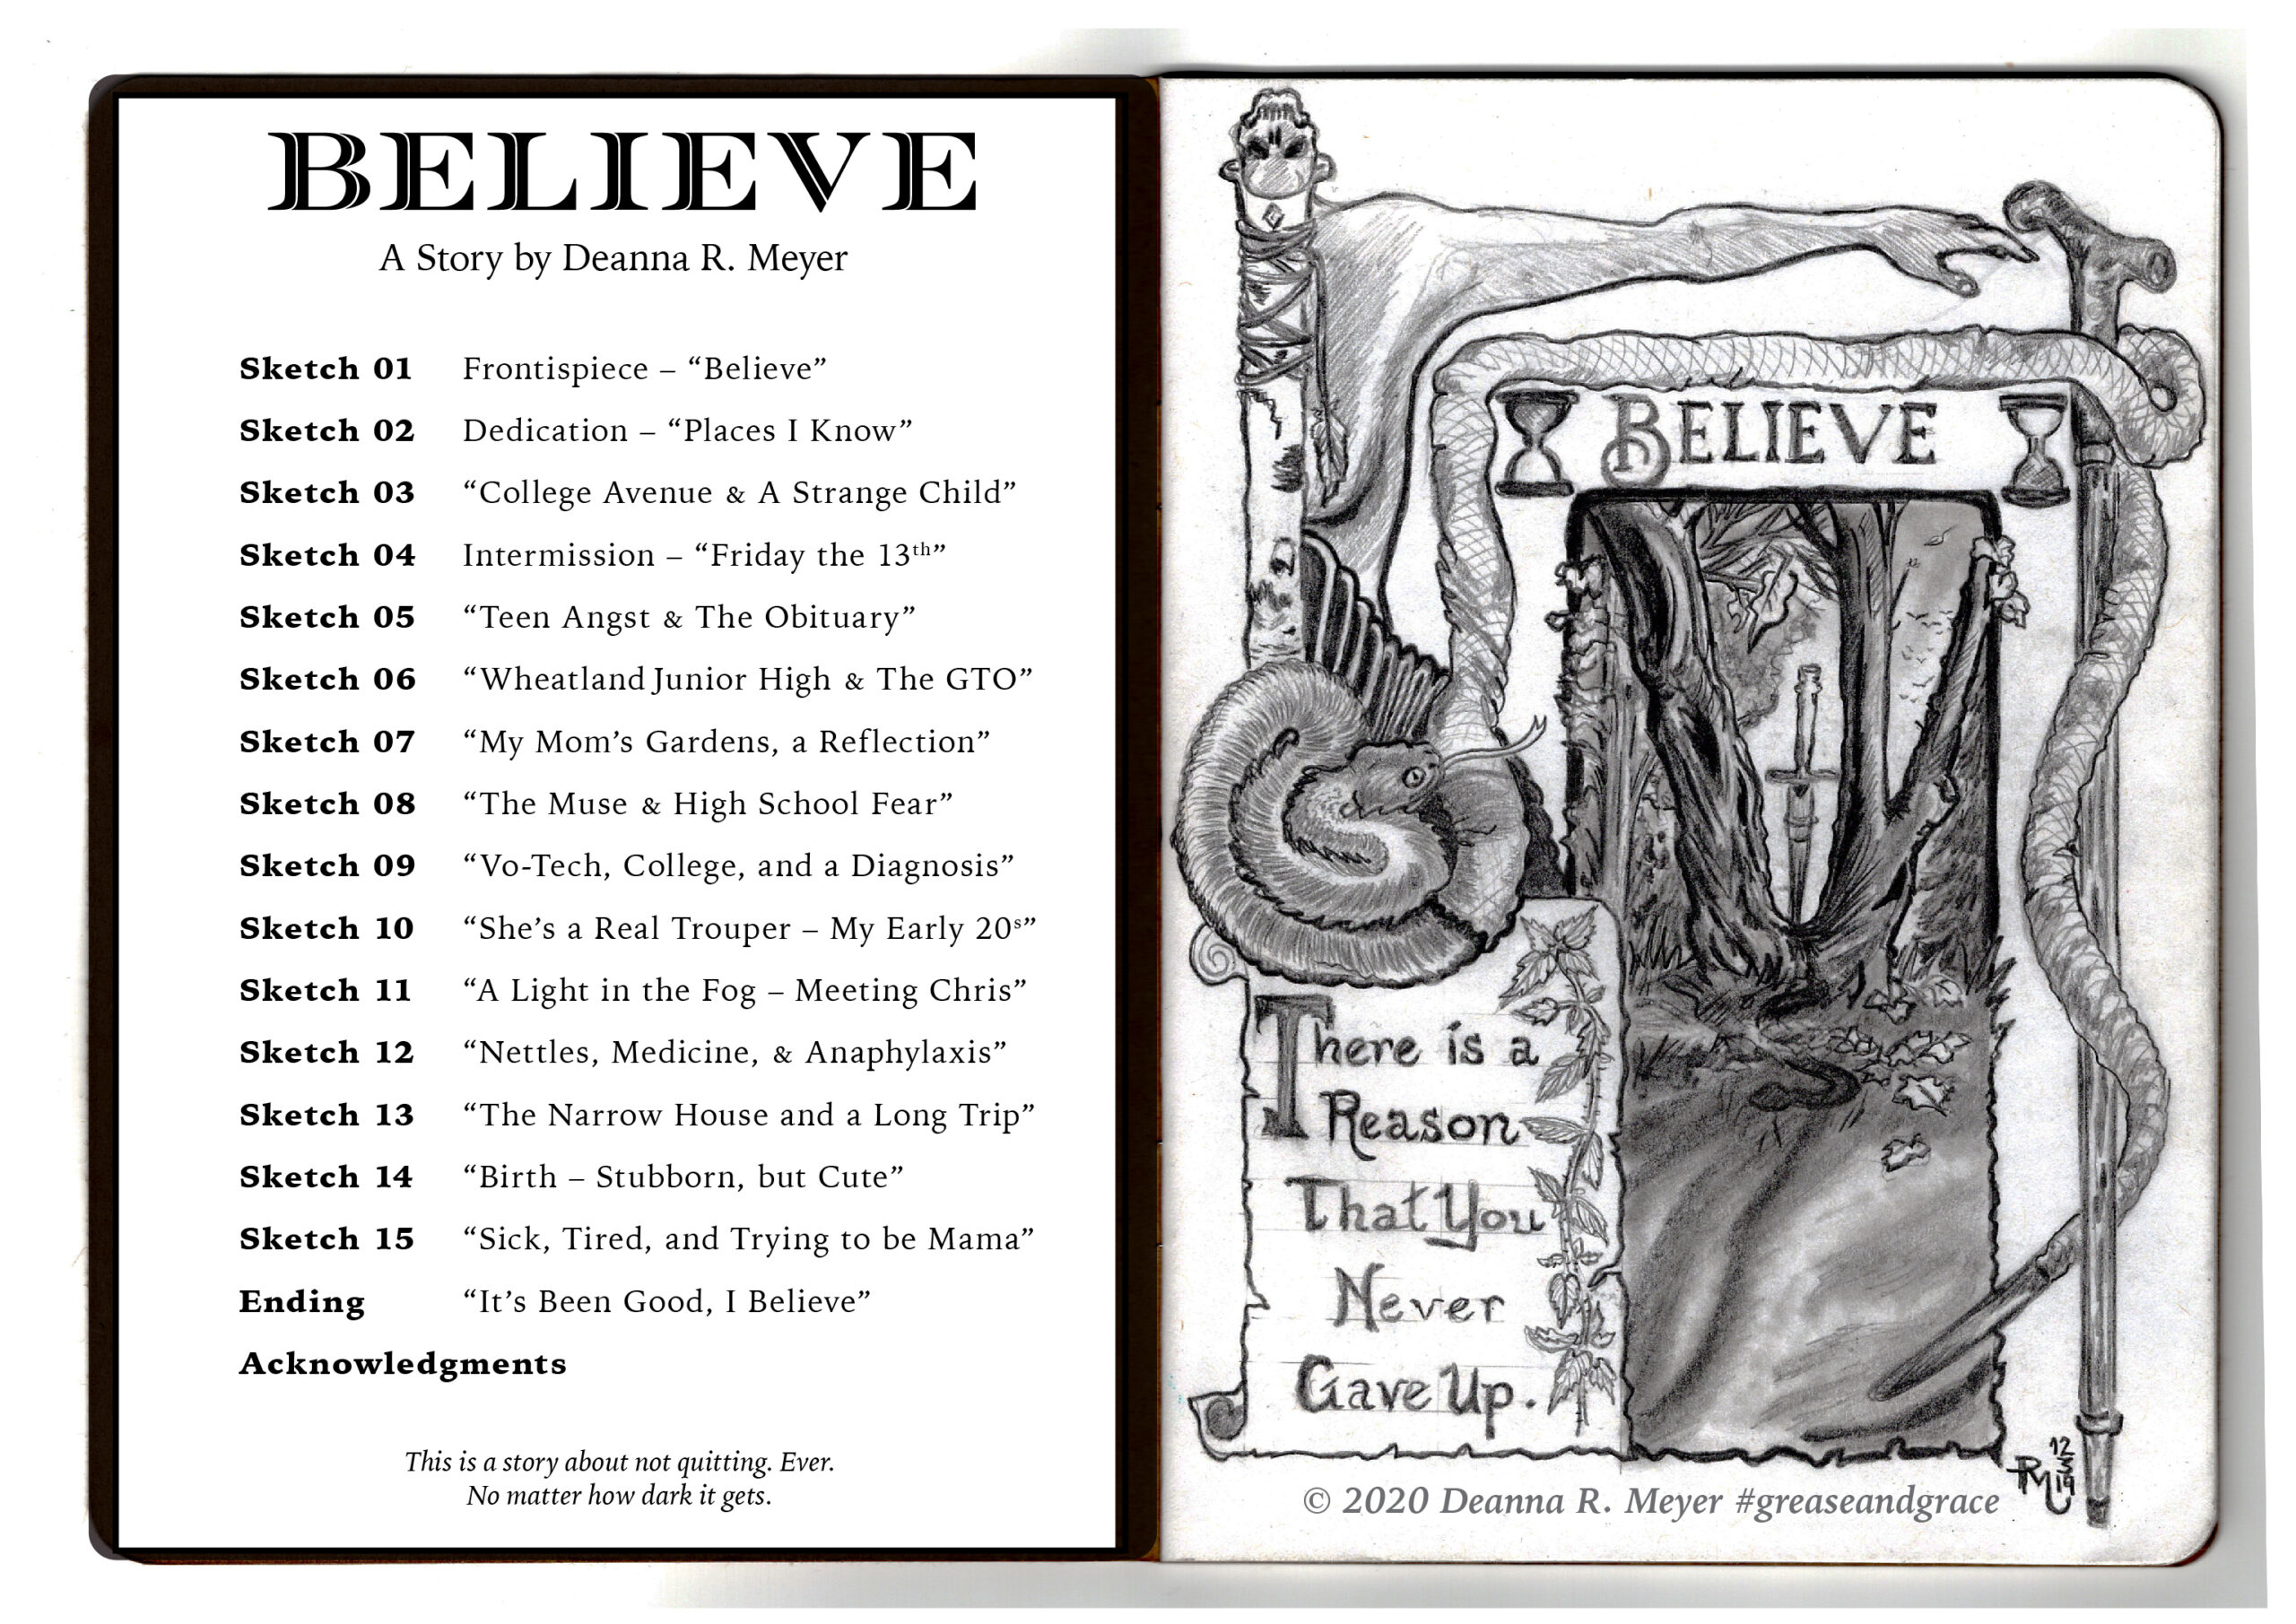 """Believe"" by Deanna R. Meyer Brooklyn Art Library Call No. 373.26-2"